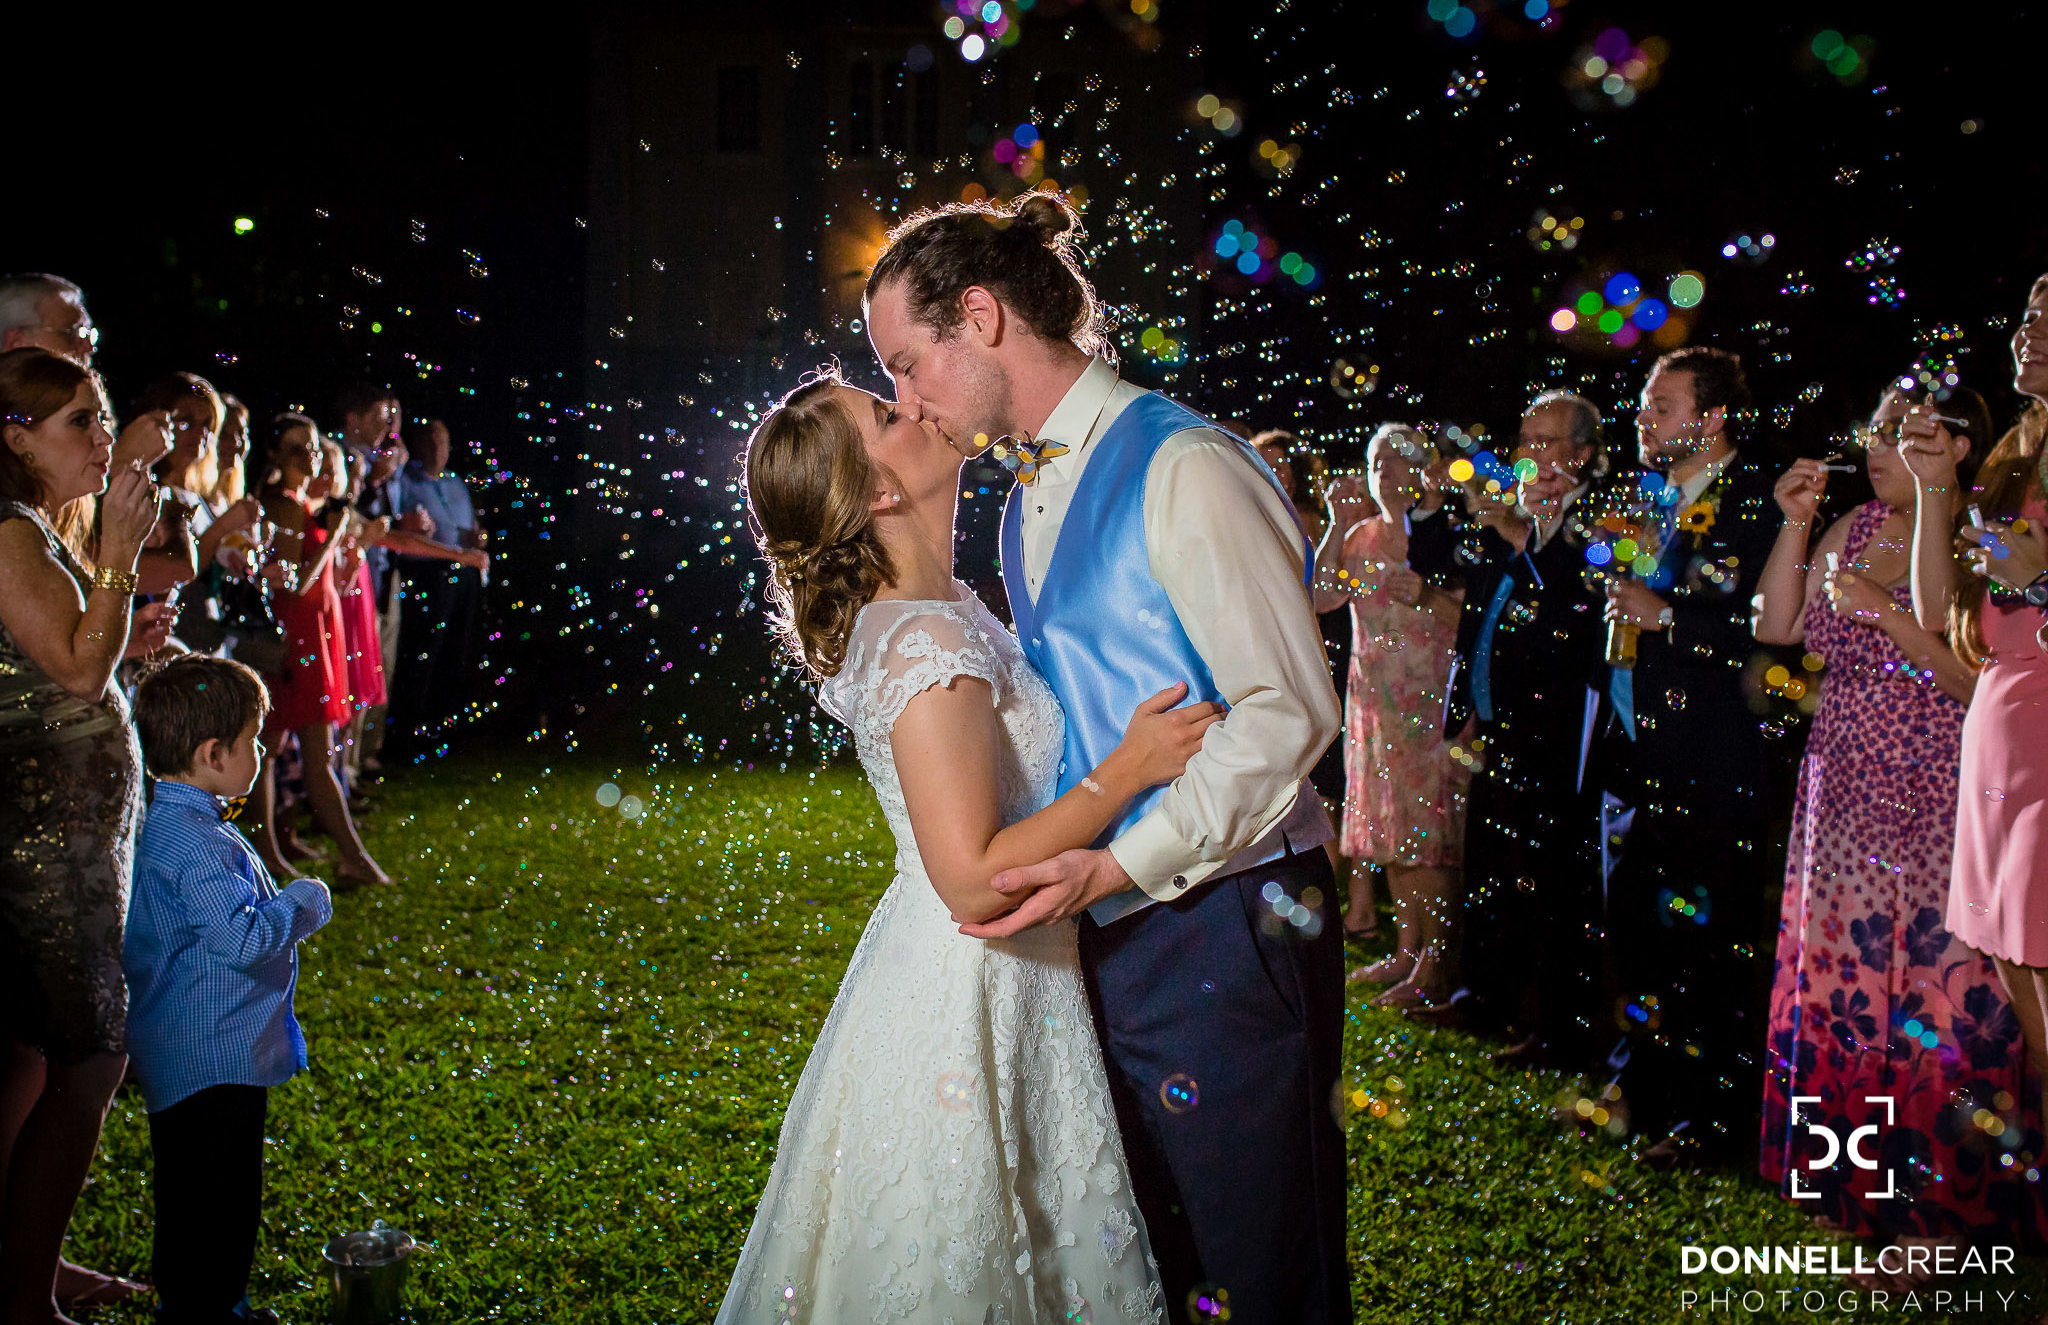 Cokesbury College wedding bubble exit with couple kissing